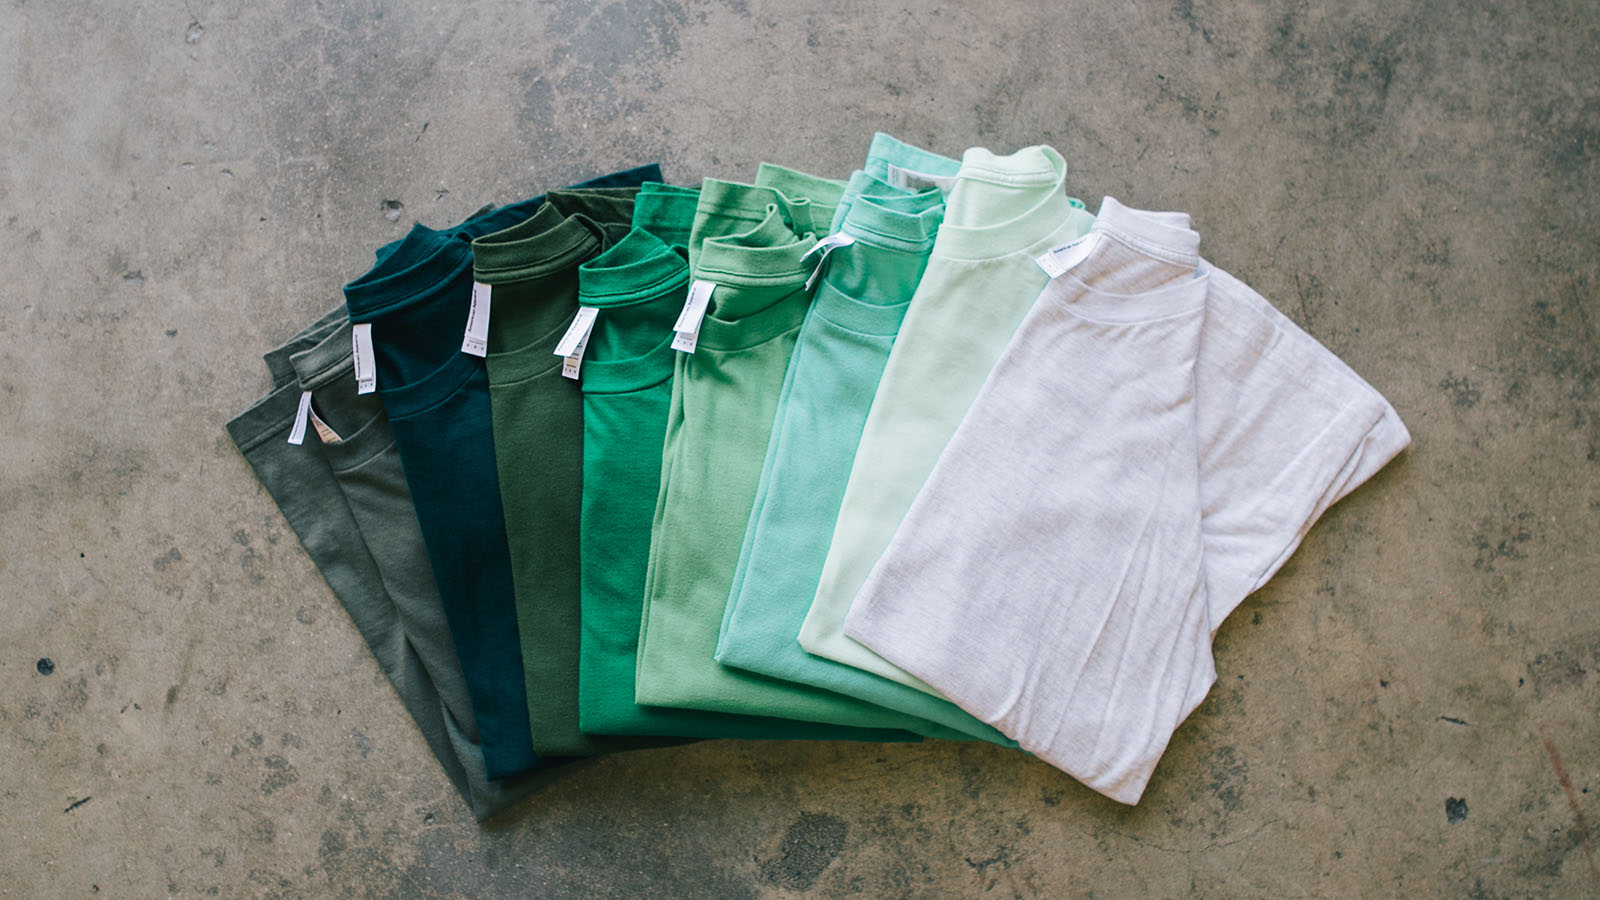 A palette of green blank t-shirts